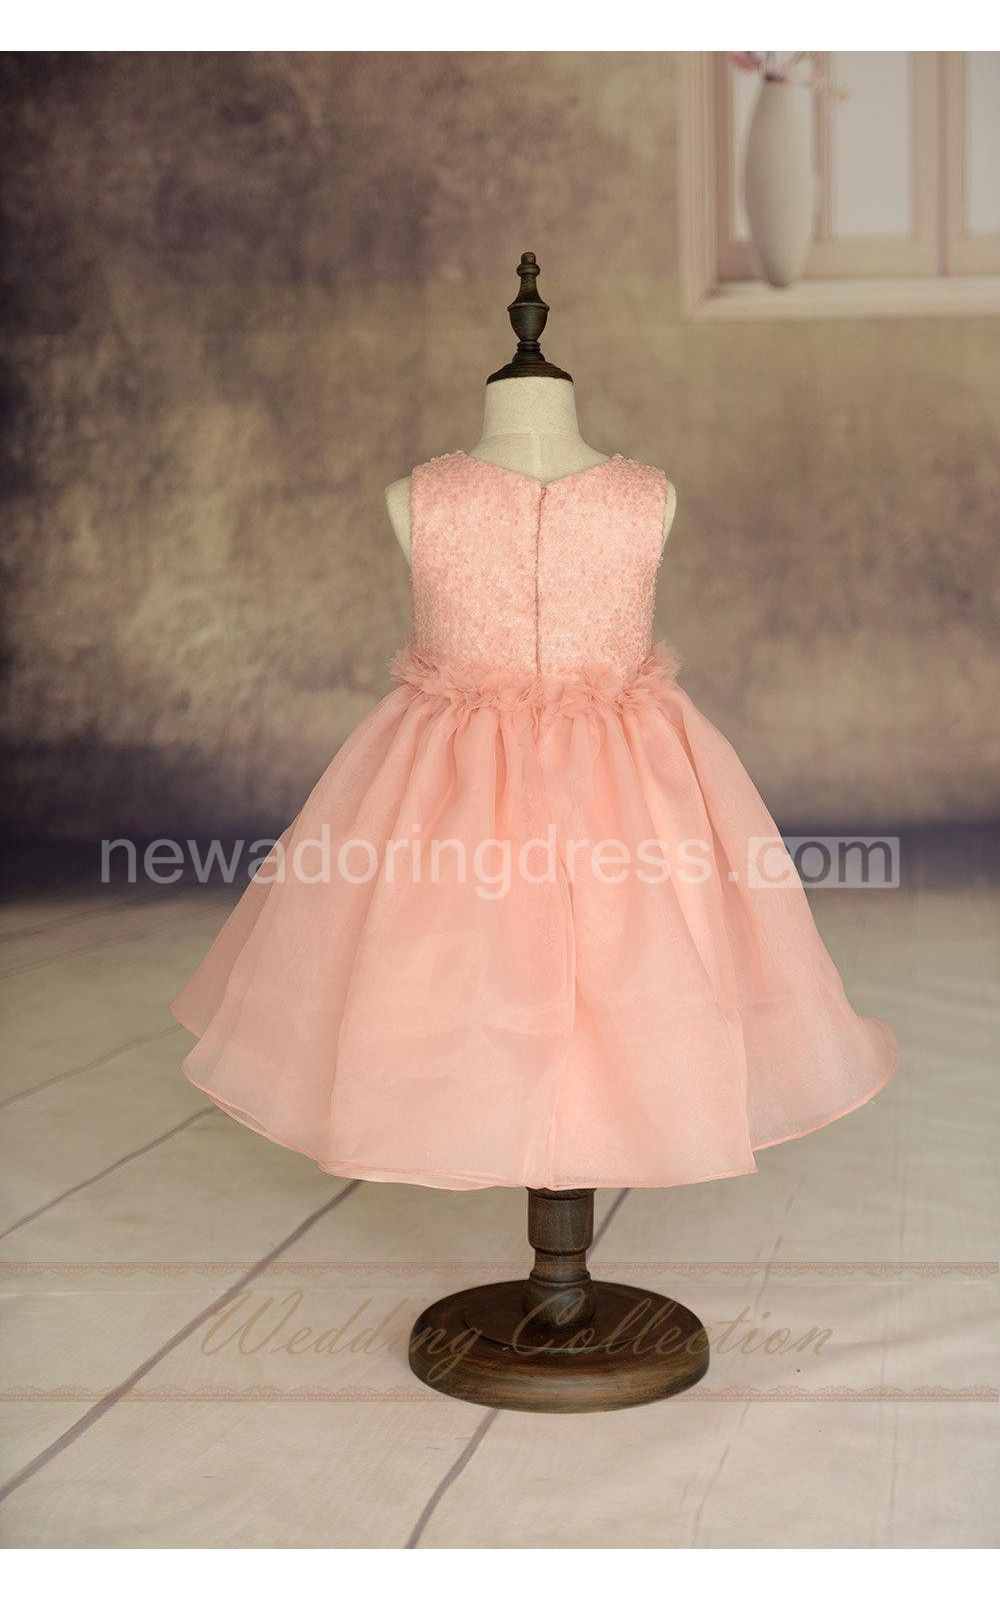 Blush pink flower girl dress handmade flowers waistband tulle skirt